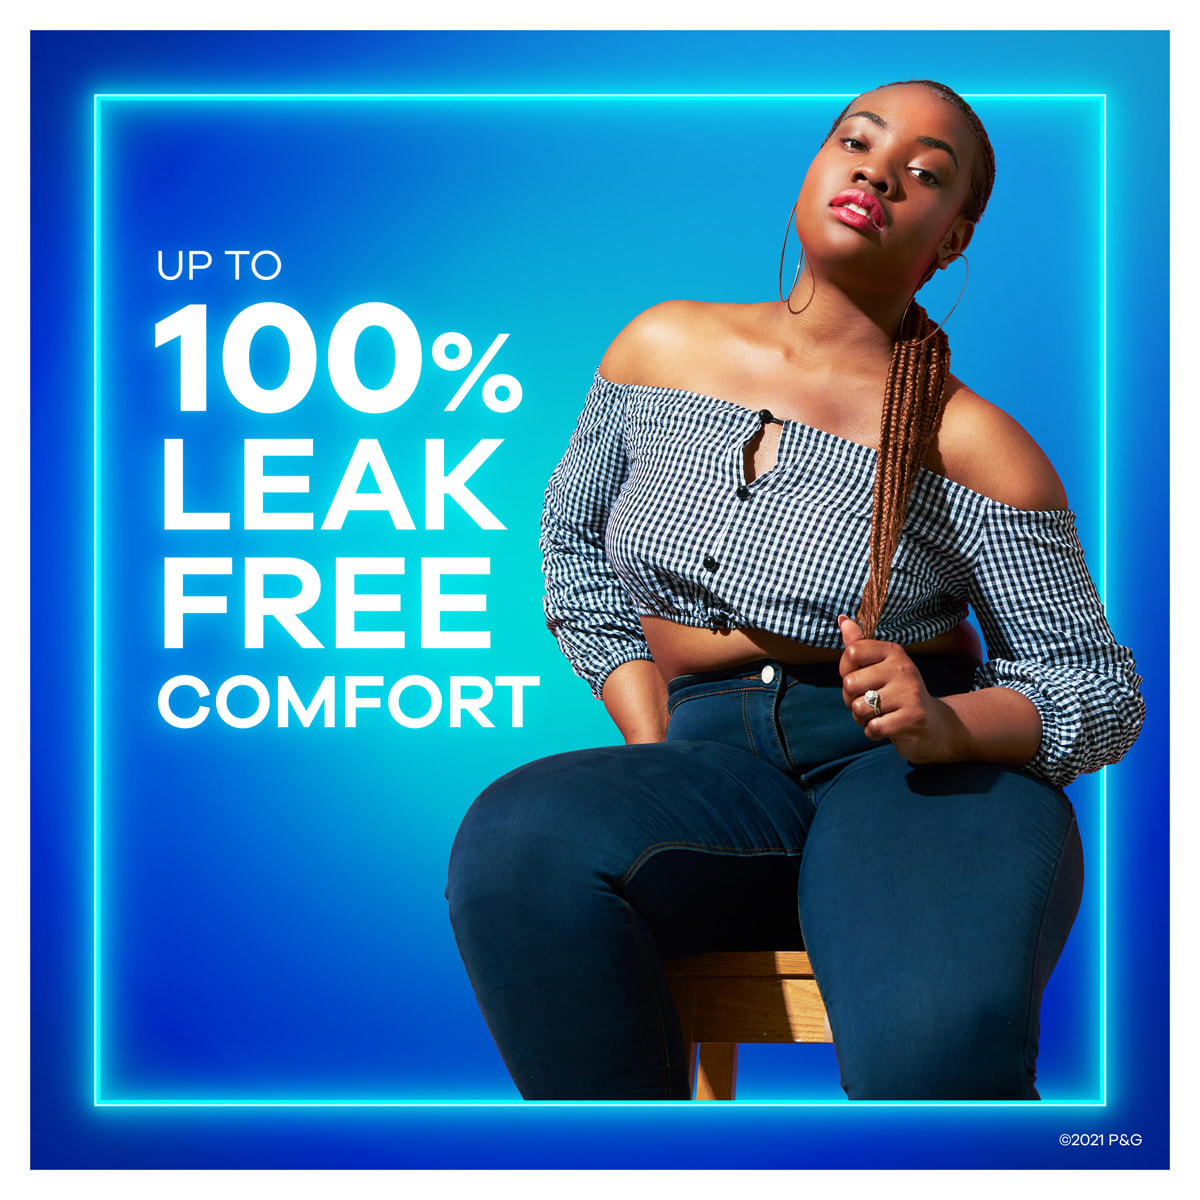 Always Ultra 100 Percent Leak Free Comfort